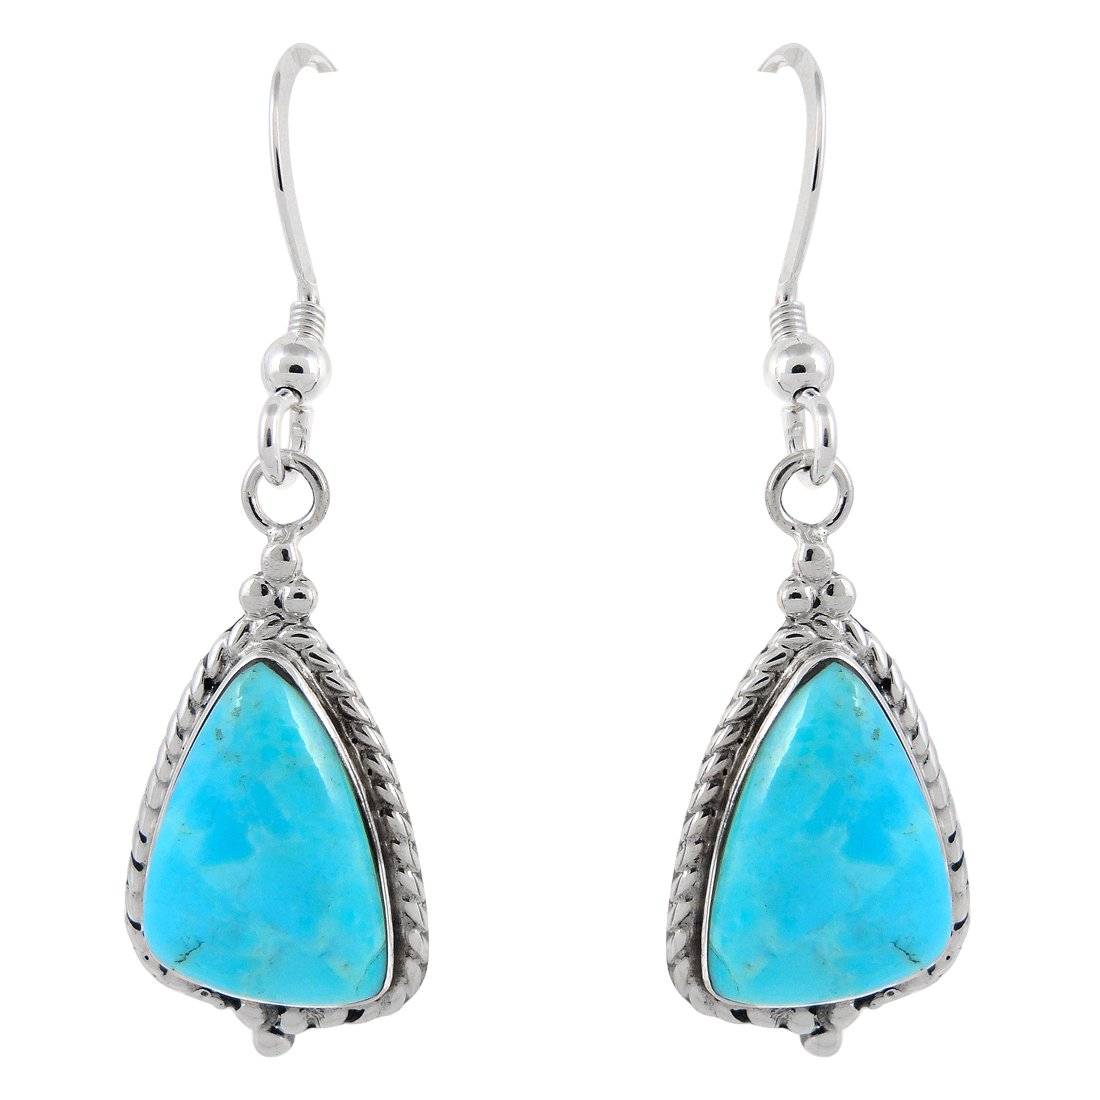 925 Sterling Silver Earrings Genuine Turquoise Drop Dangles (Turquoise)